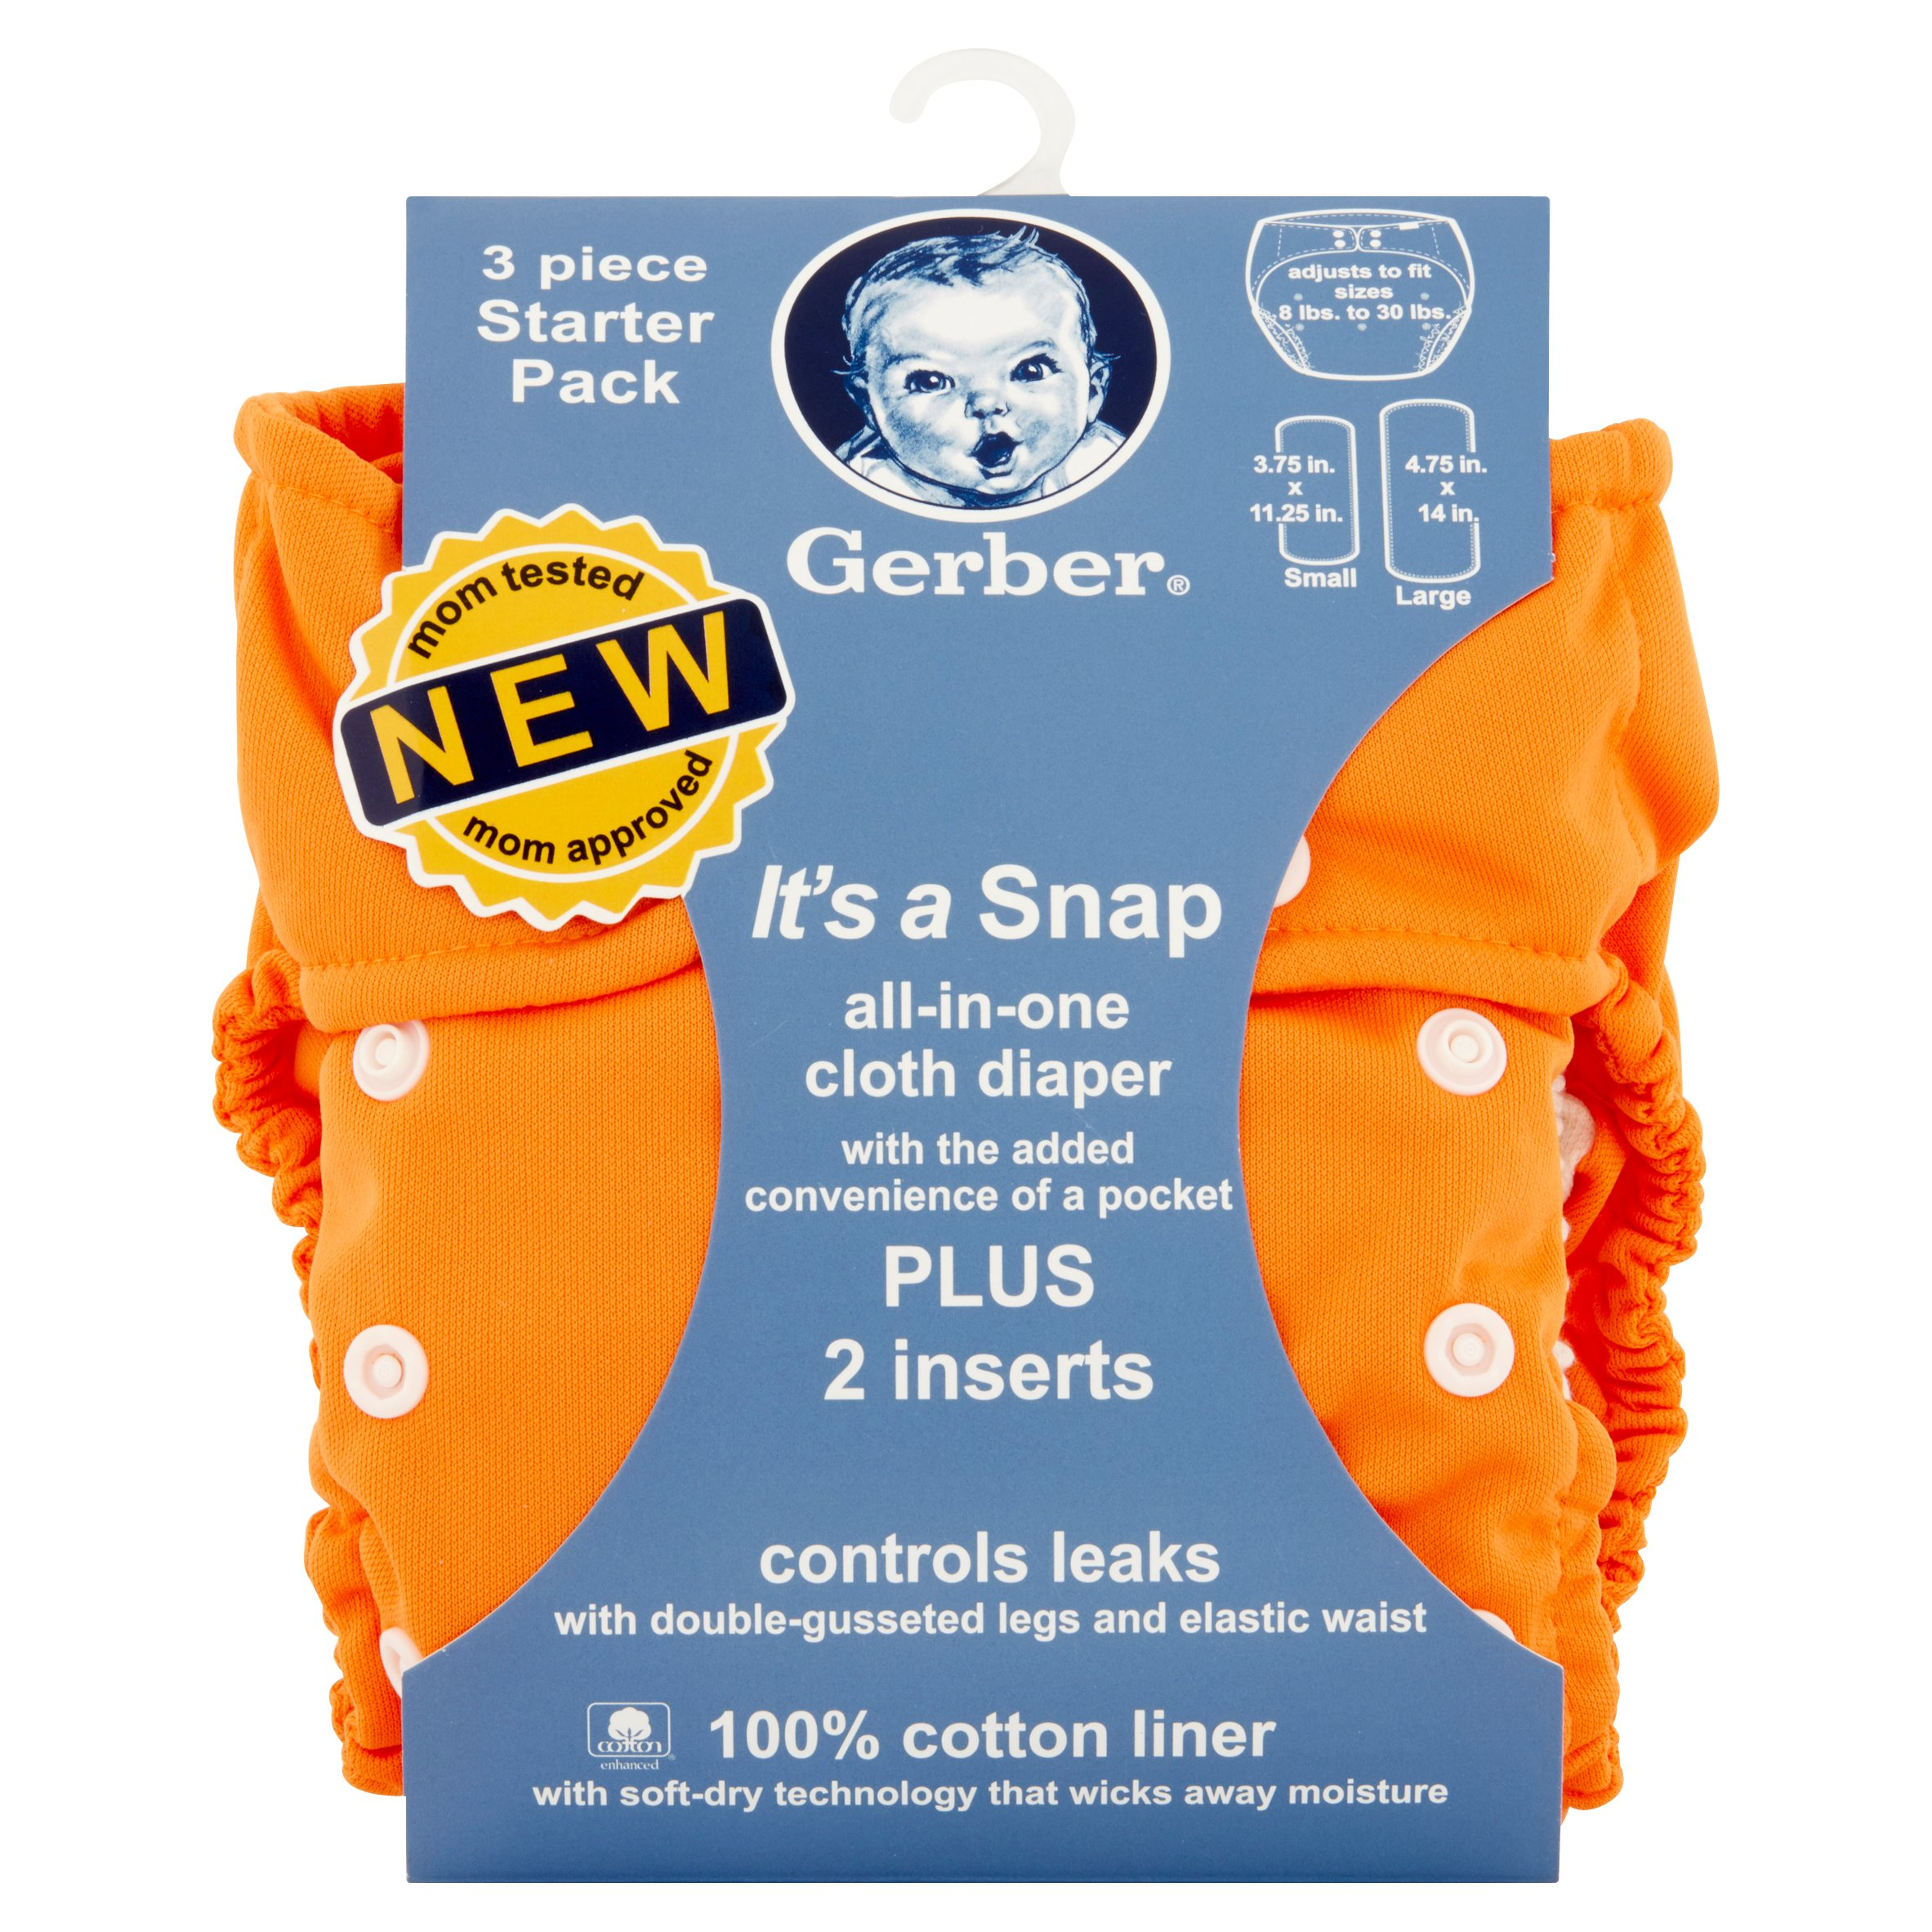 Gerber All-in-One Cloth Diaper Starter Pack, 3 count